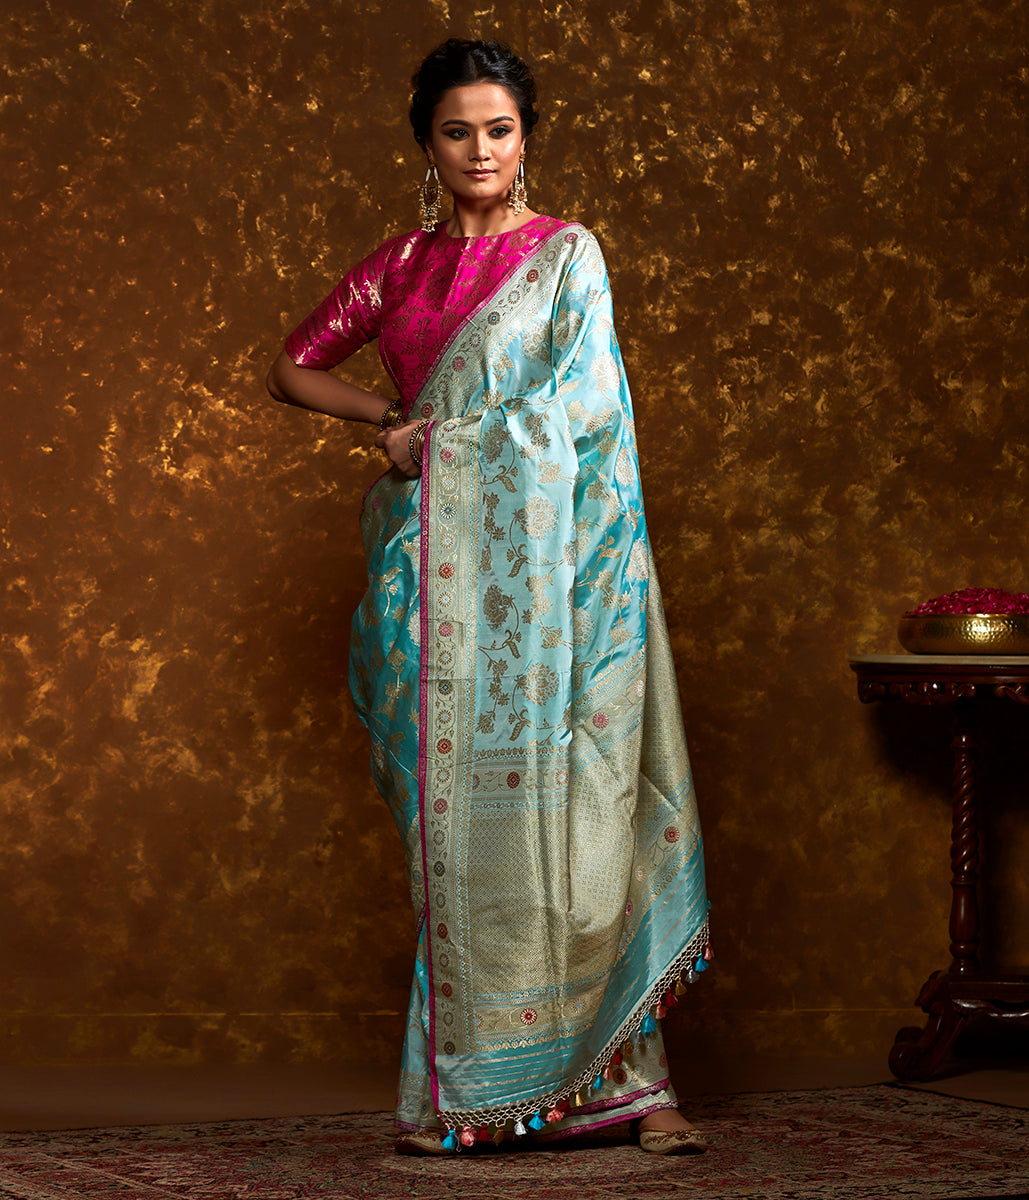 Handwoven Light Blue Kadhwa Jangla with Meenakari